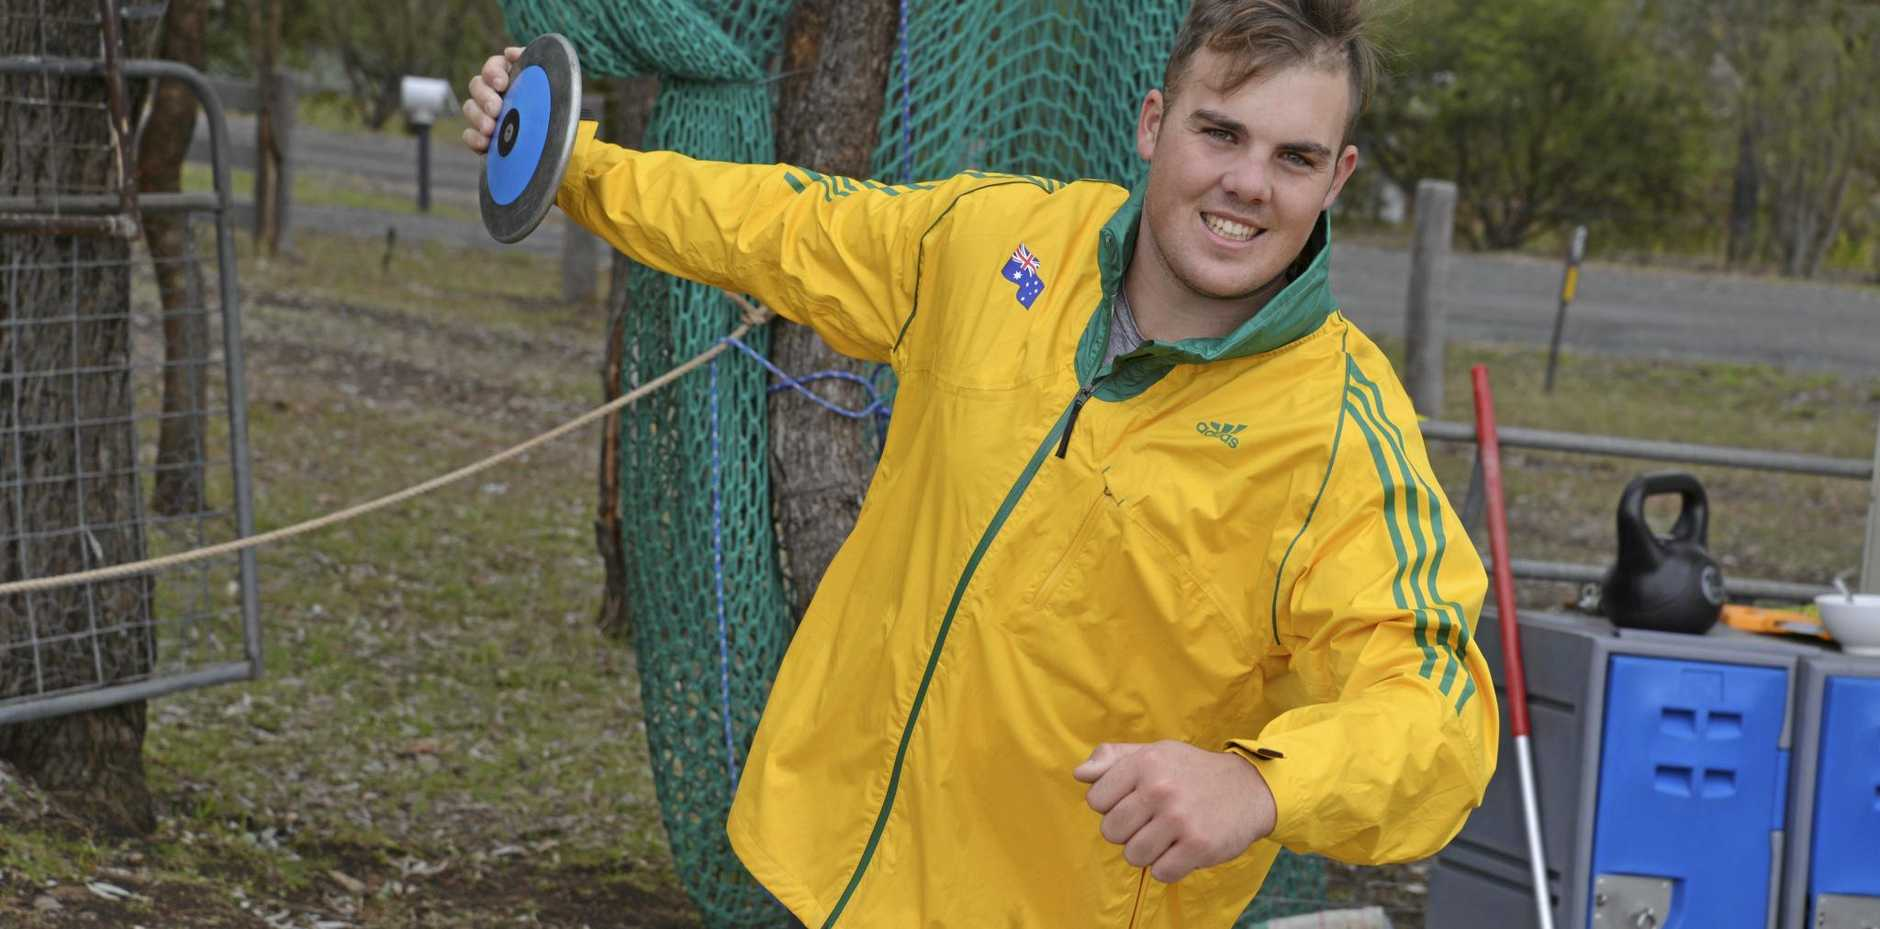 GAMES HOPES: Allora thrower Matthew Denny on his home throwing circle before heading to the Olympics. He is now aiming for the Commonwealth Games in discus and hammer.